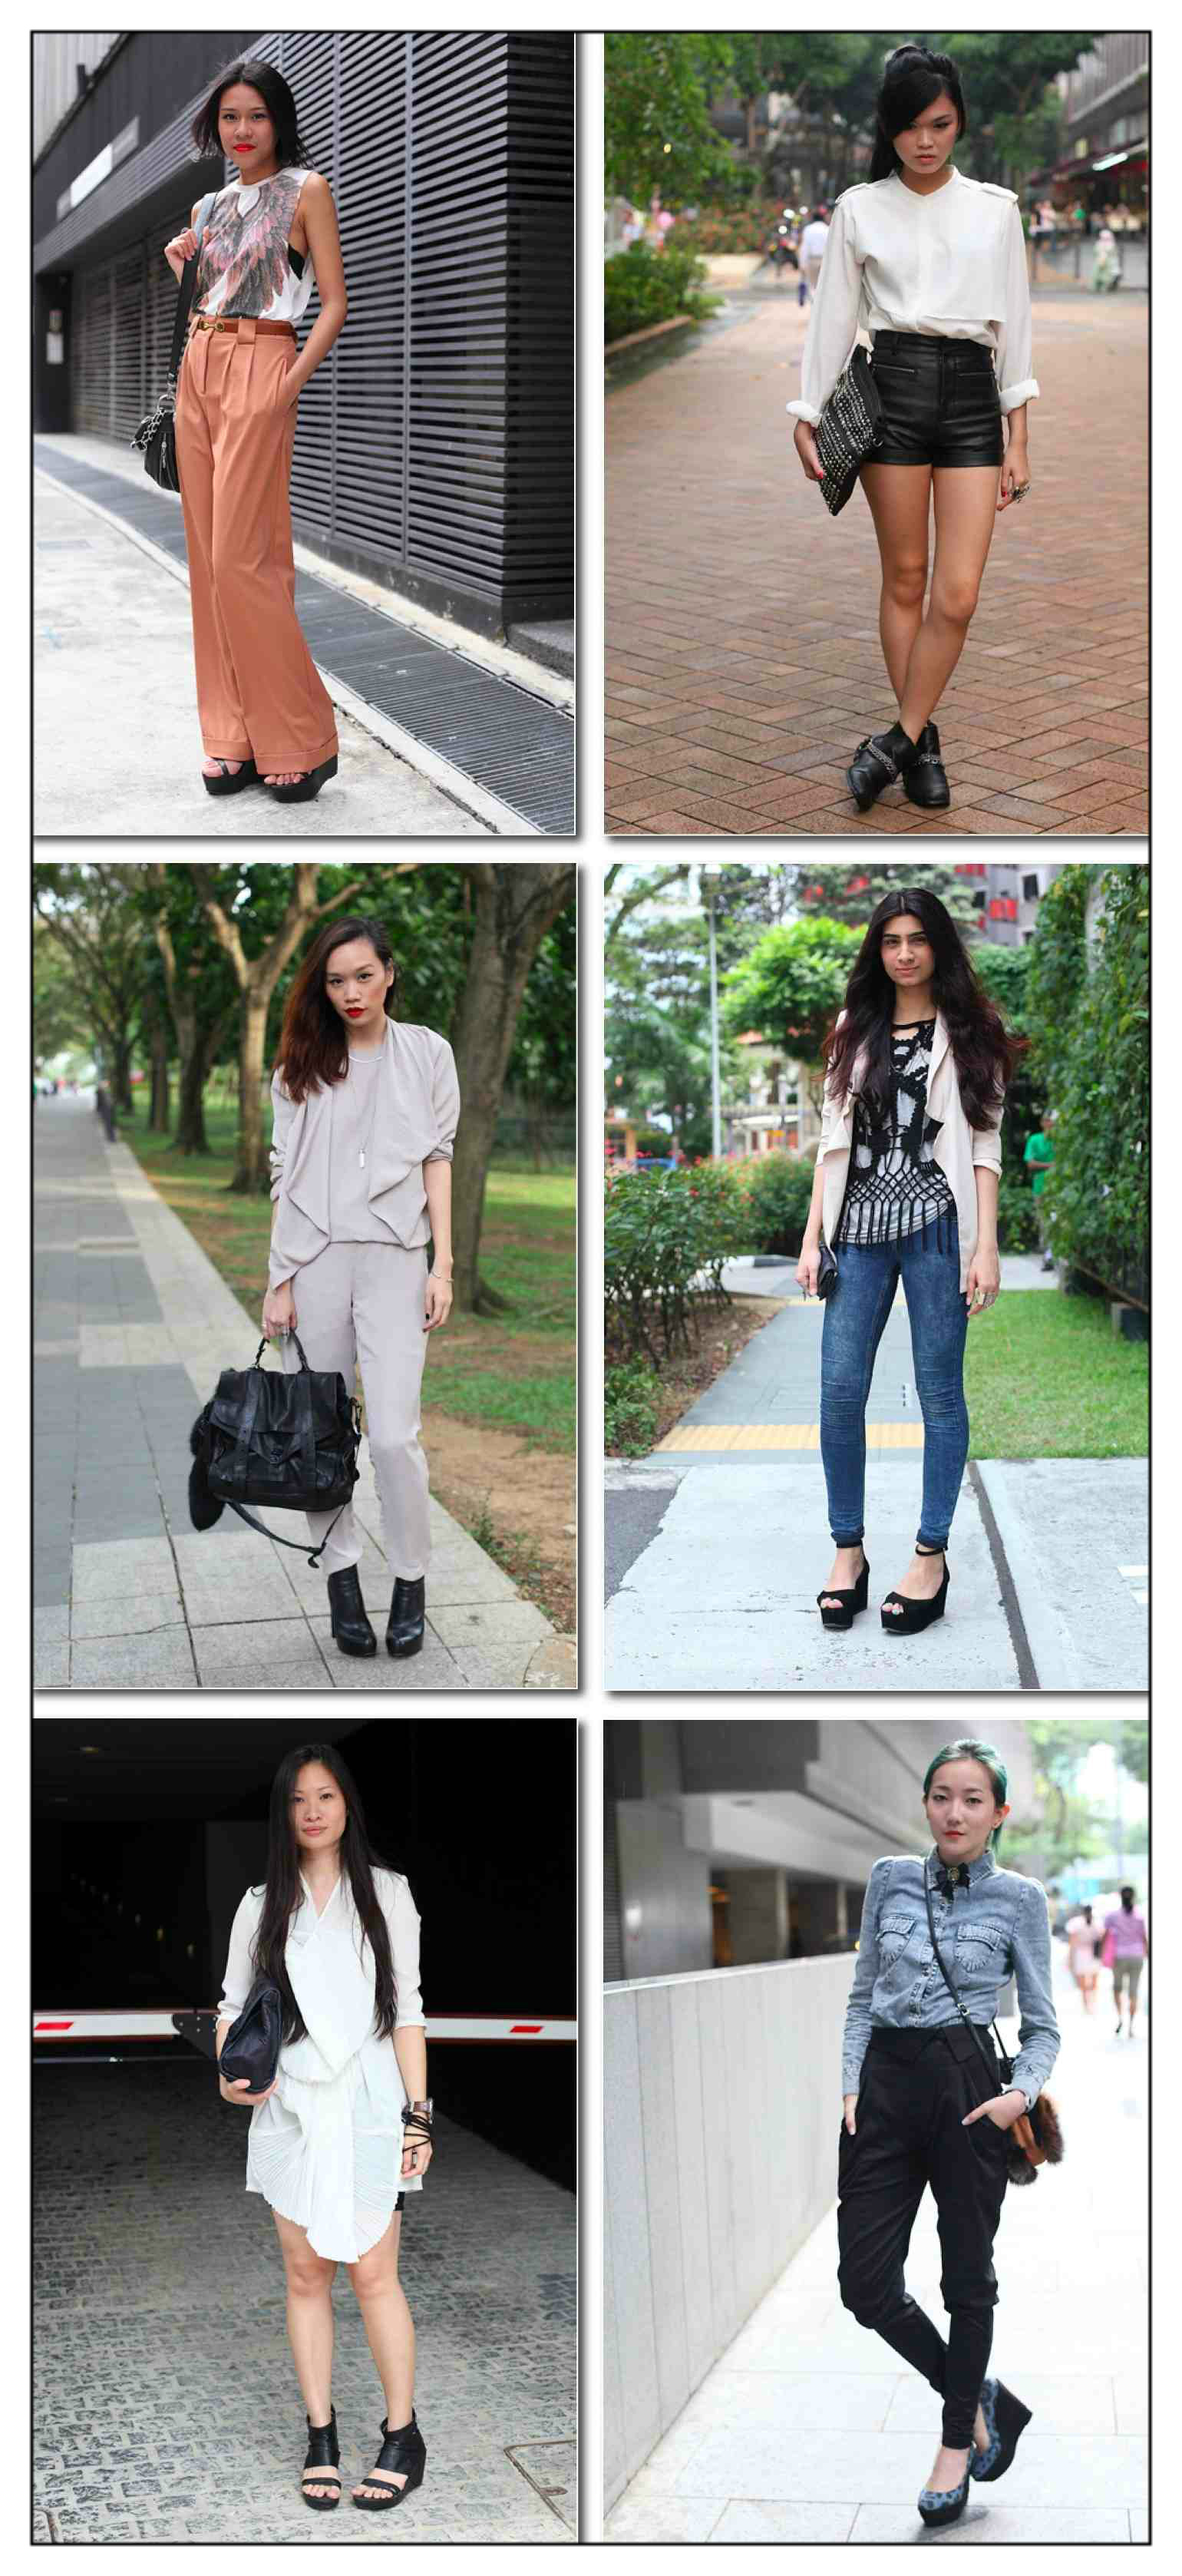 StyleTravelling11